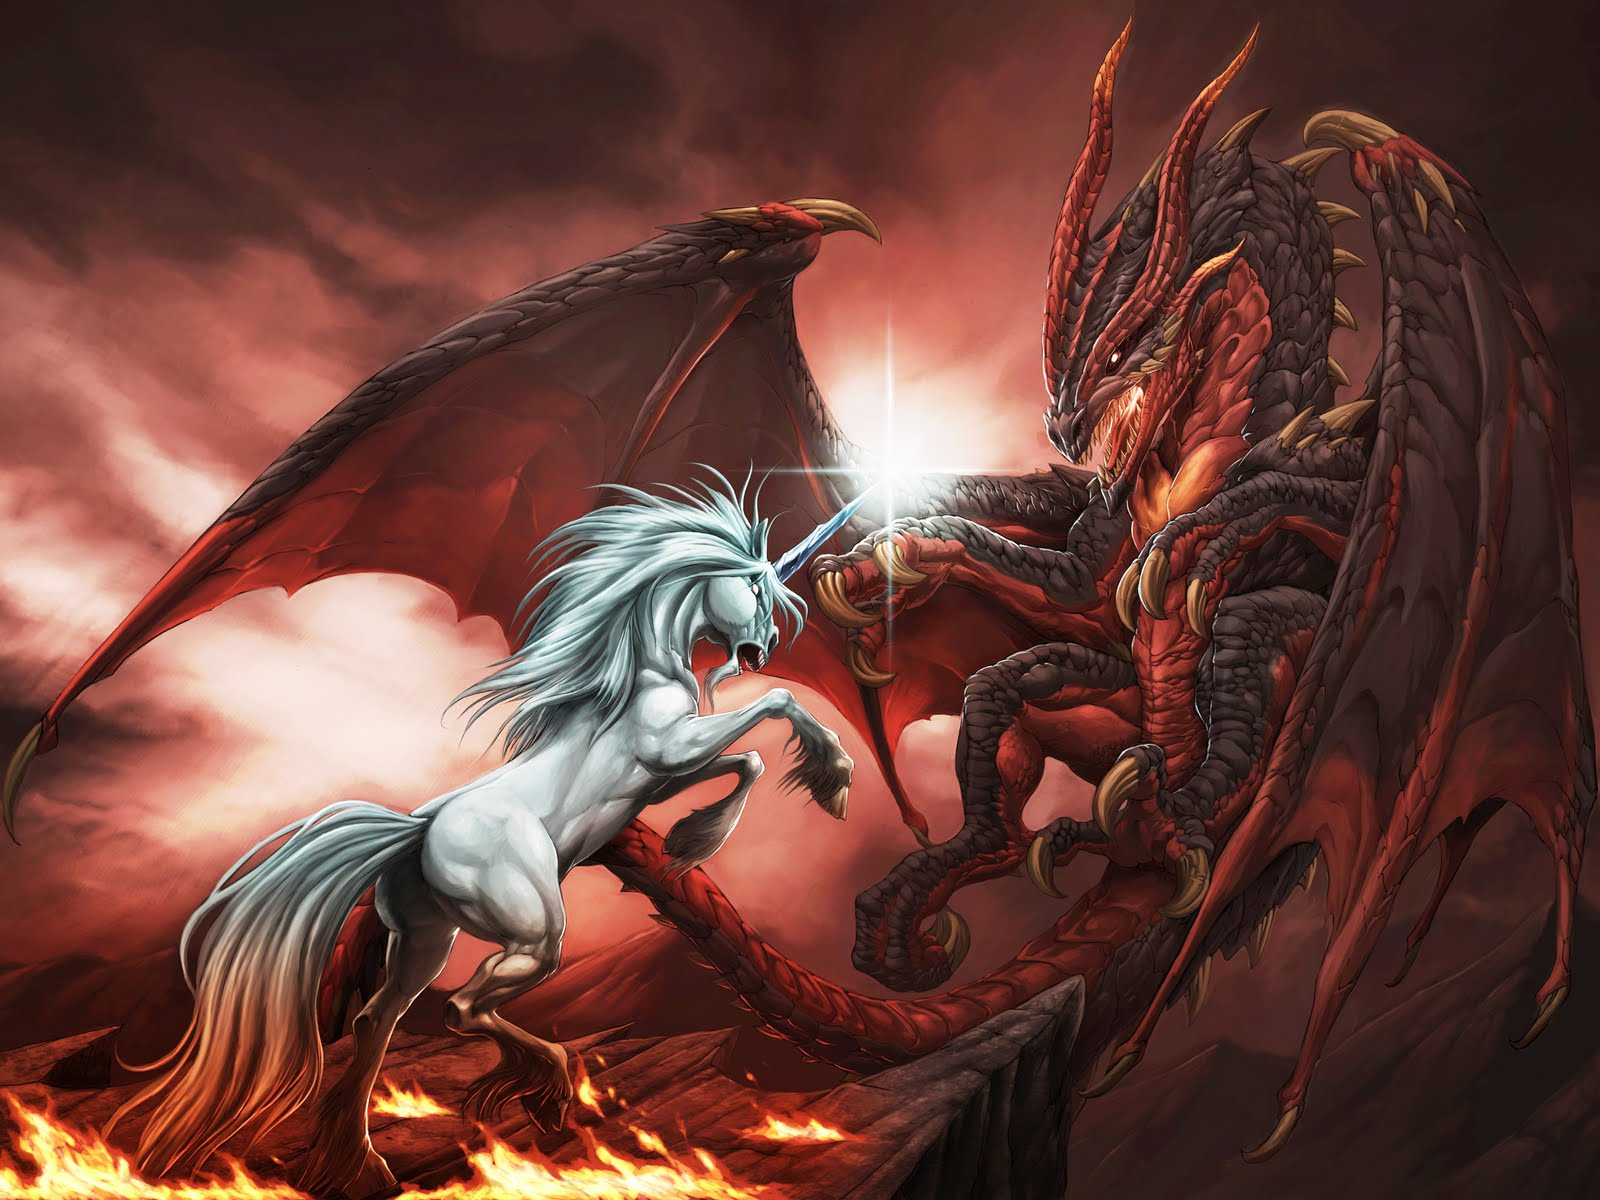 Pretty cool but not better than Destroyer of Ponies 1600x1200